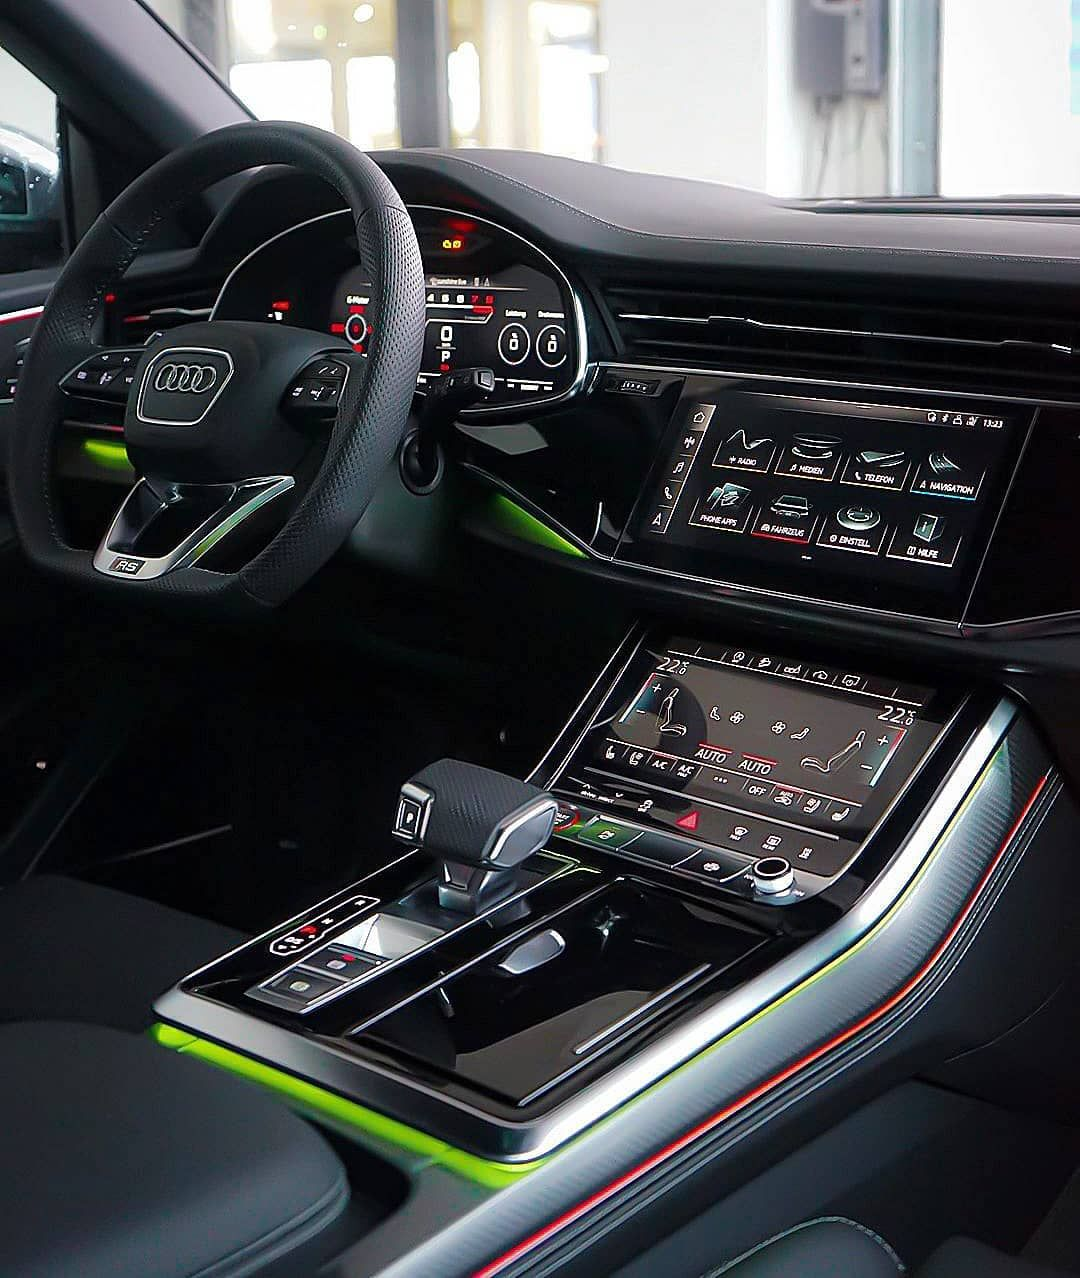 Audi Q8 On Instagram The Spaceship Rsq8 Our Pages Fourrings Nation S8 Nation In 2020 Audi Dream Cars Ambient Lighting